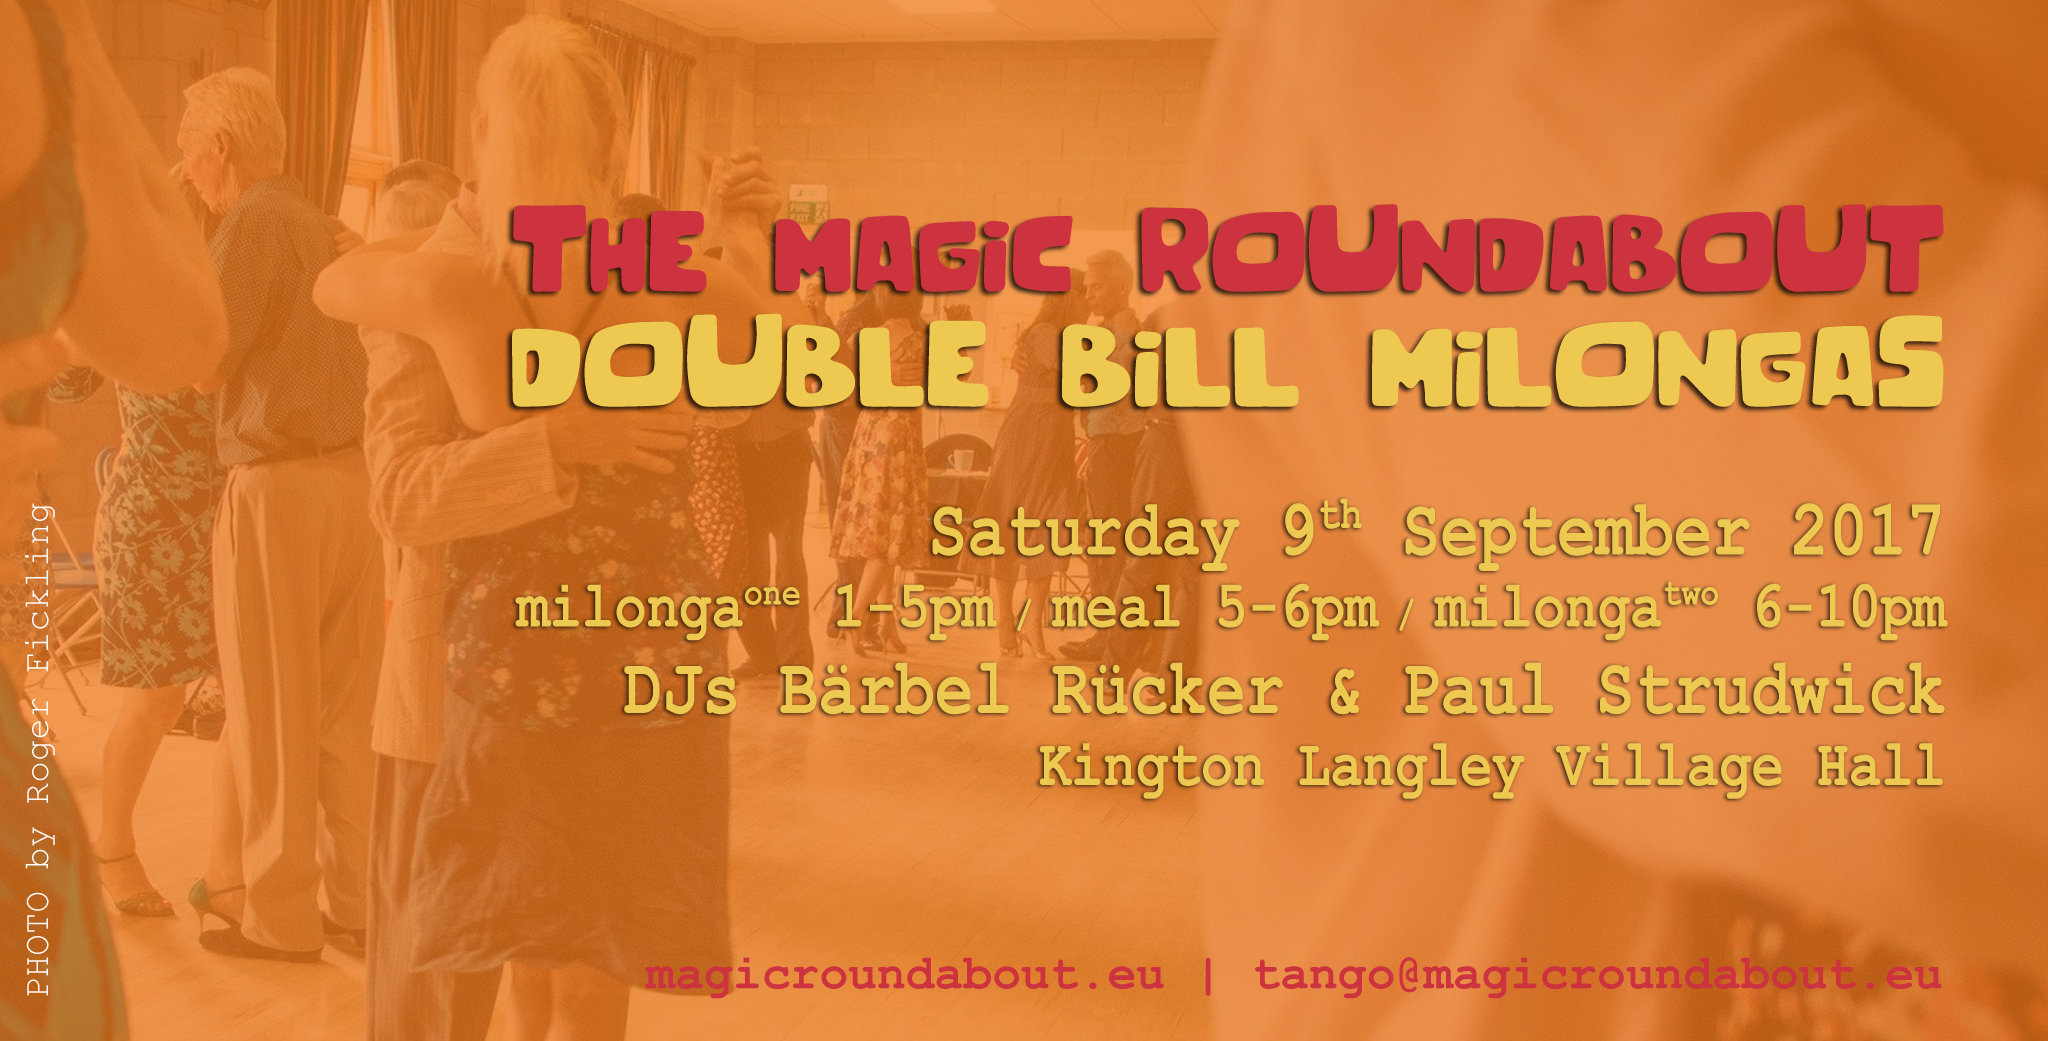 The Magic Roundabout Double Bill Milongas